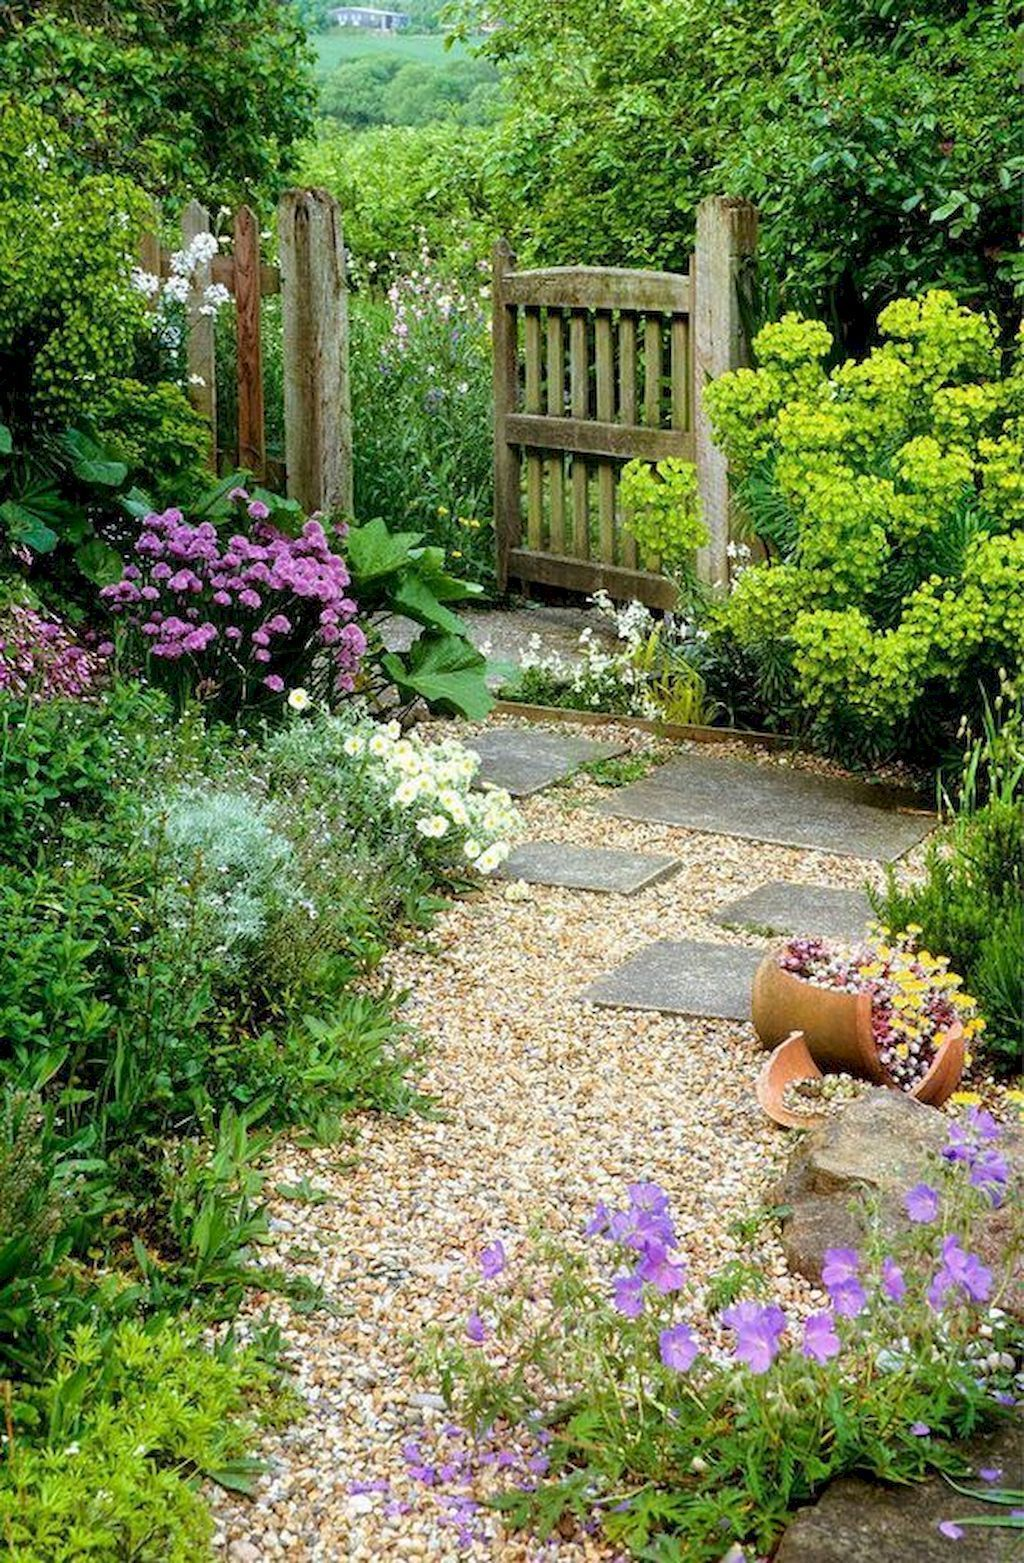 01 Stunning Small Cottage Garden Ideas For Backyard Landscaping Homekover Small Cottage Garden Ideas Gravel Garden Cottage Garden Design